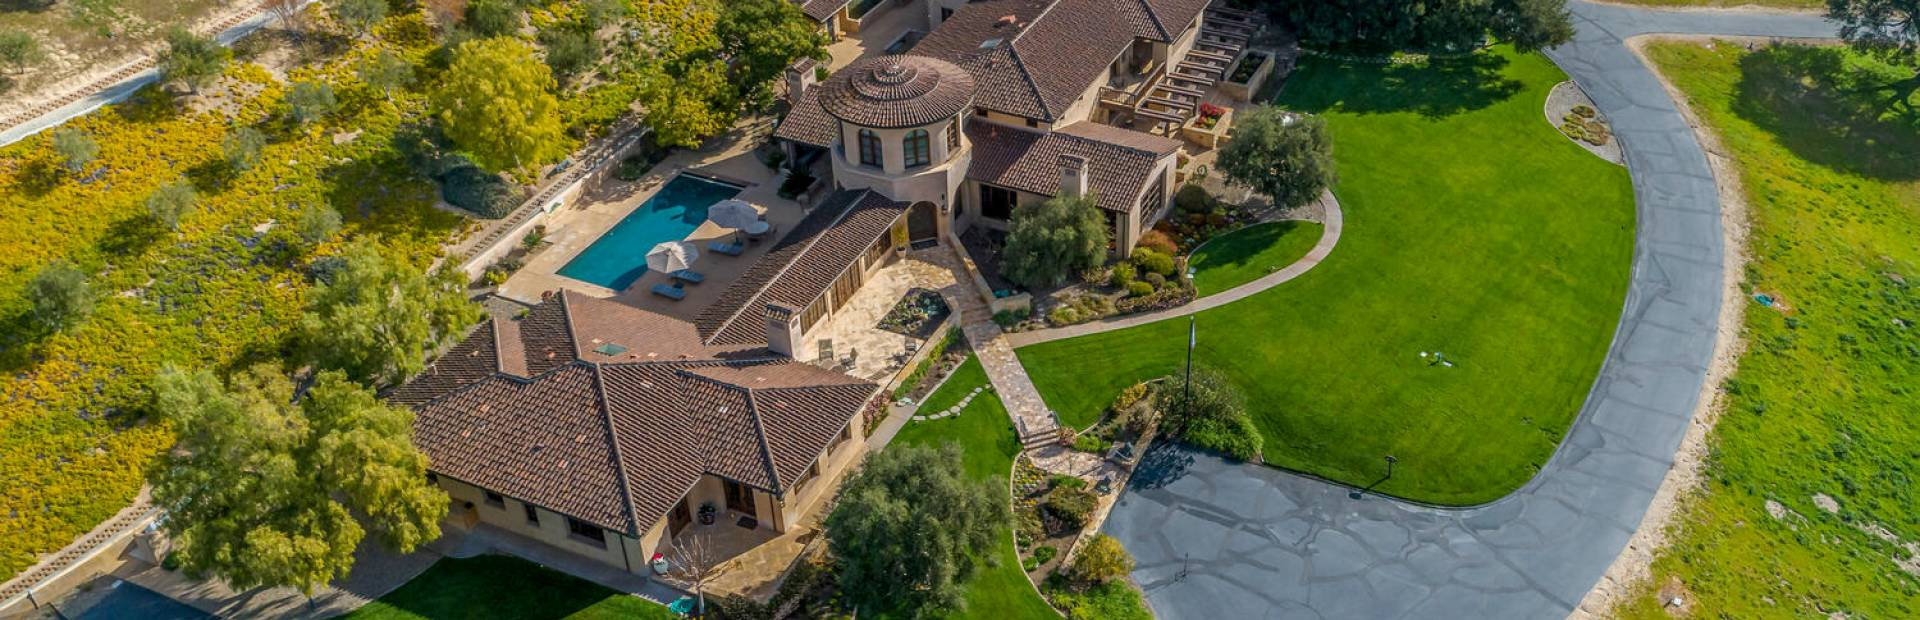 2667 Via de los Ranchos, LOS OLIVOS, California, United States, 6 Bedrooms Bedrooms, ,9 BathroomsBathrooms,Residential,For Sale,Via de los Ranchos,832096